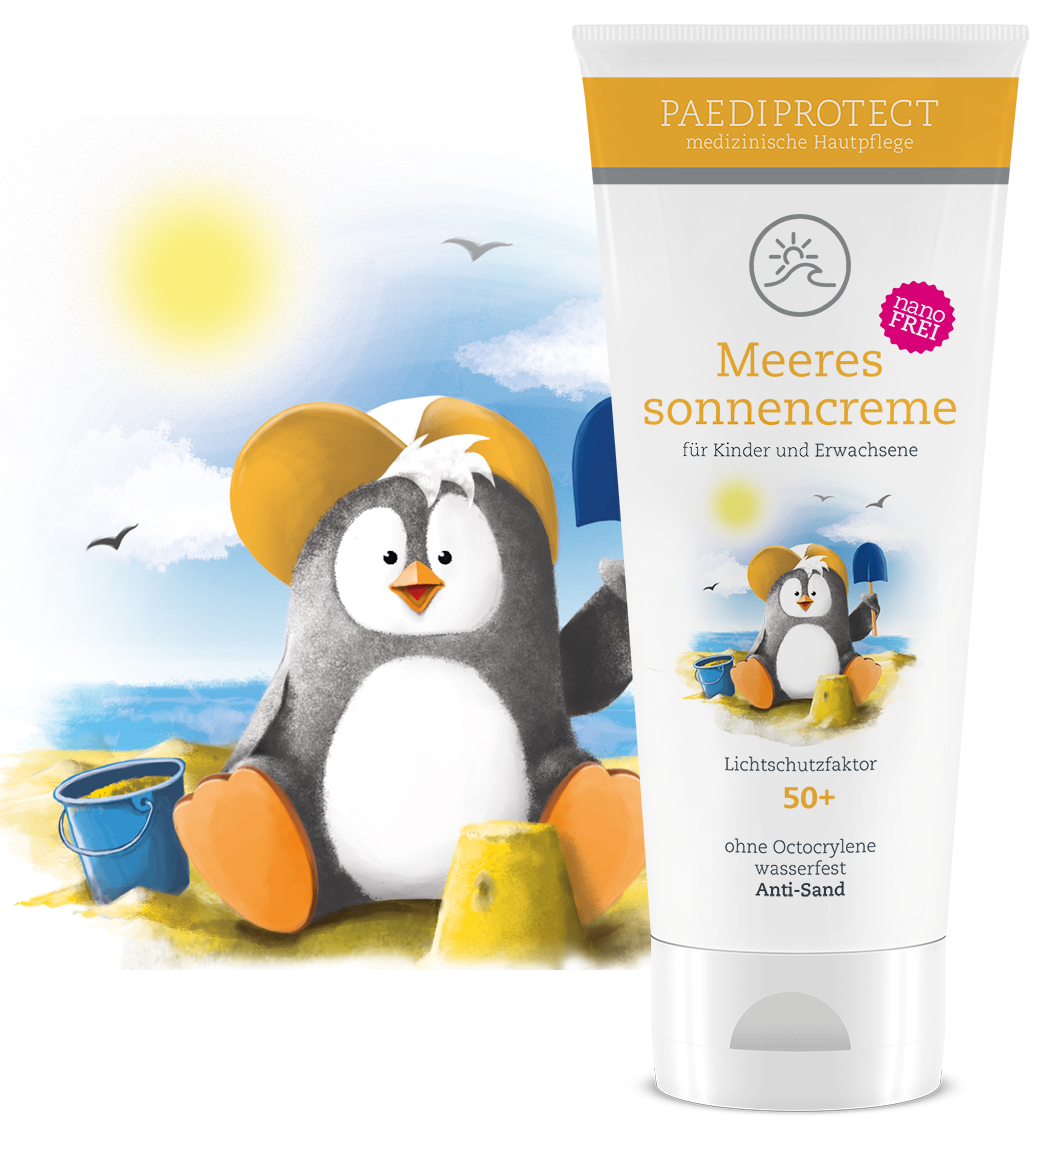 PAEDIPROTECT Meeressonnencreme